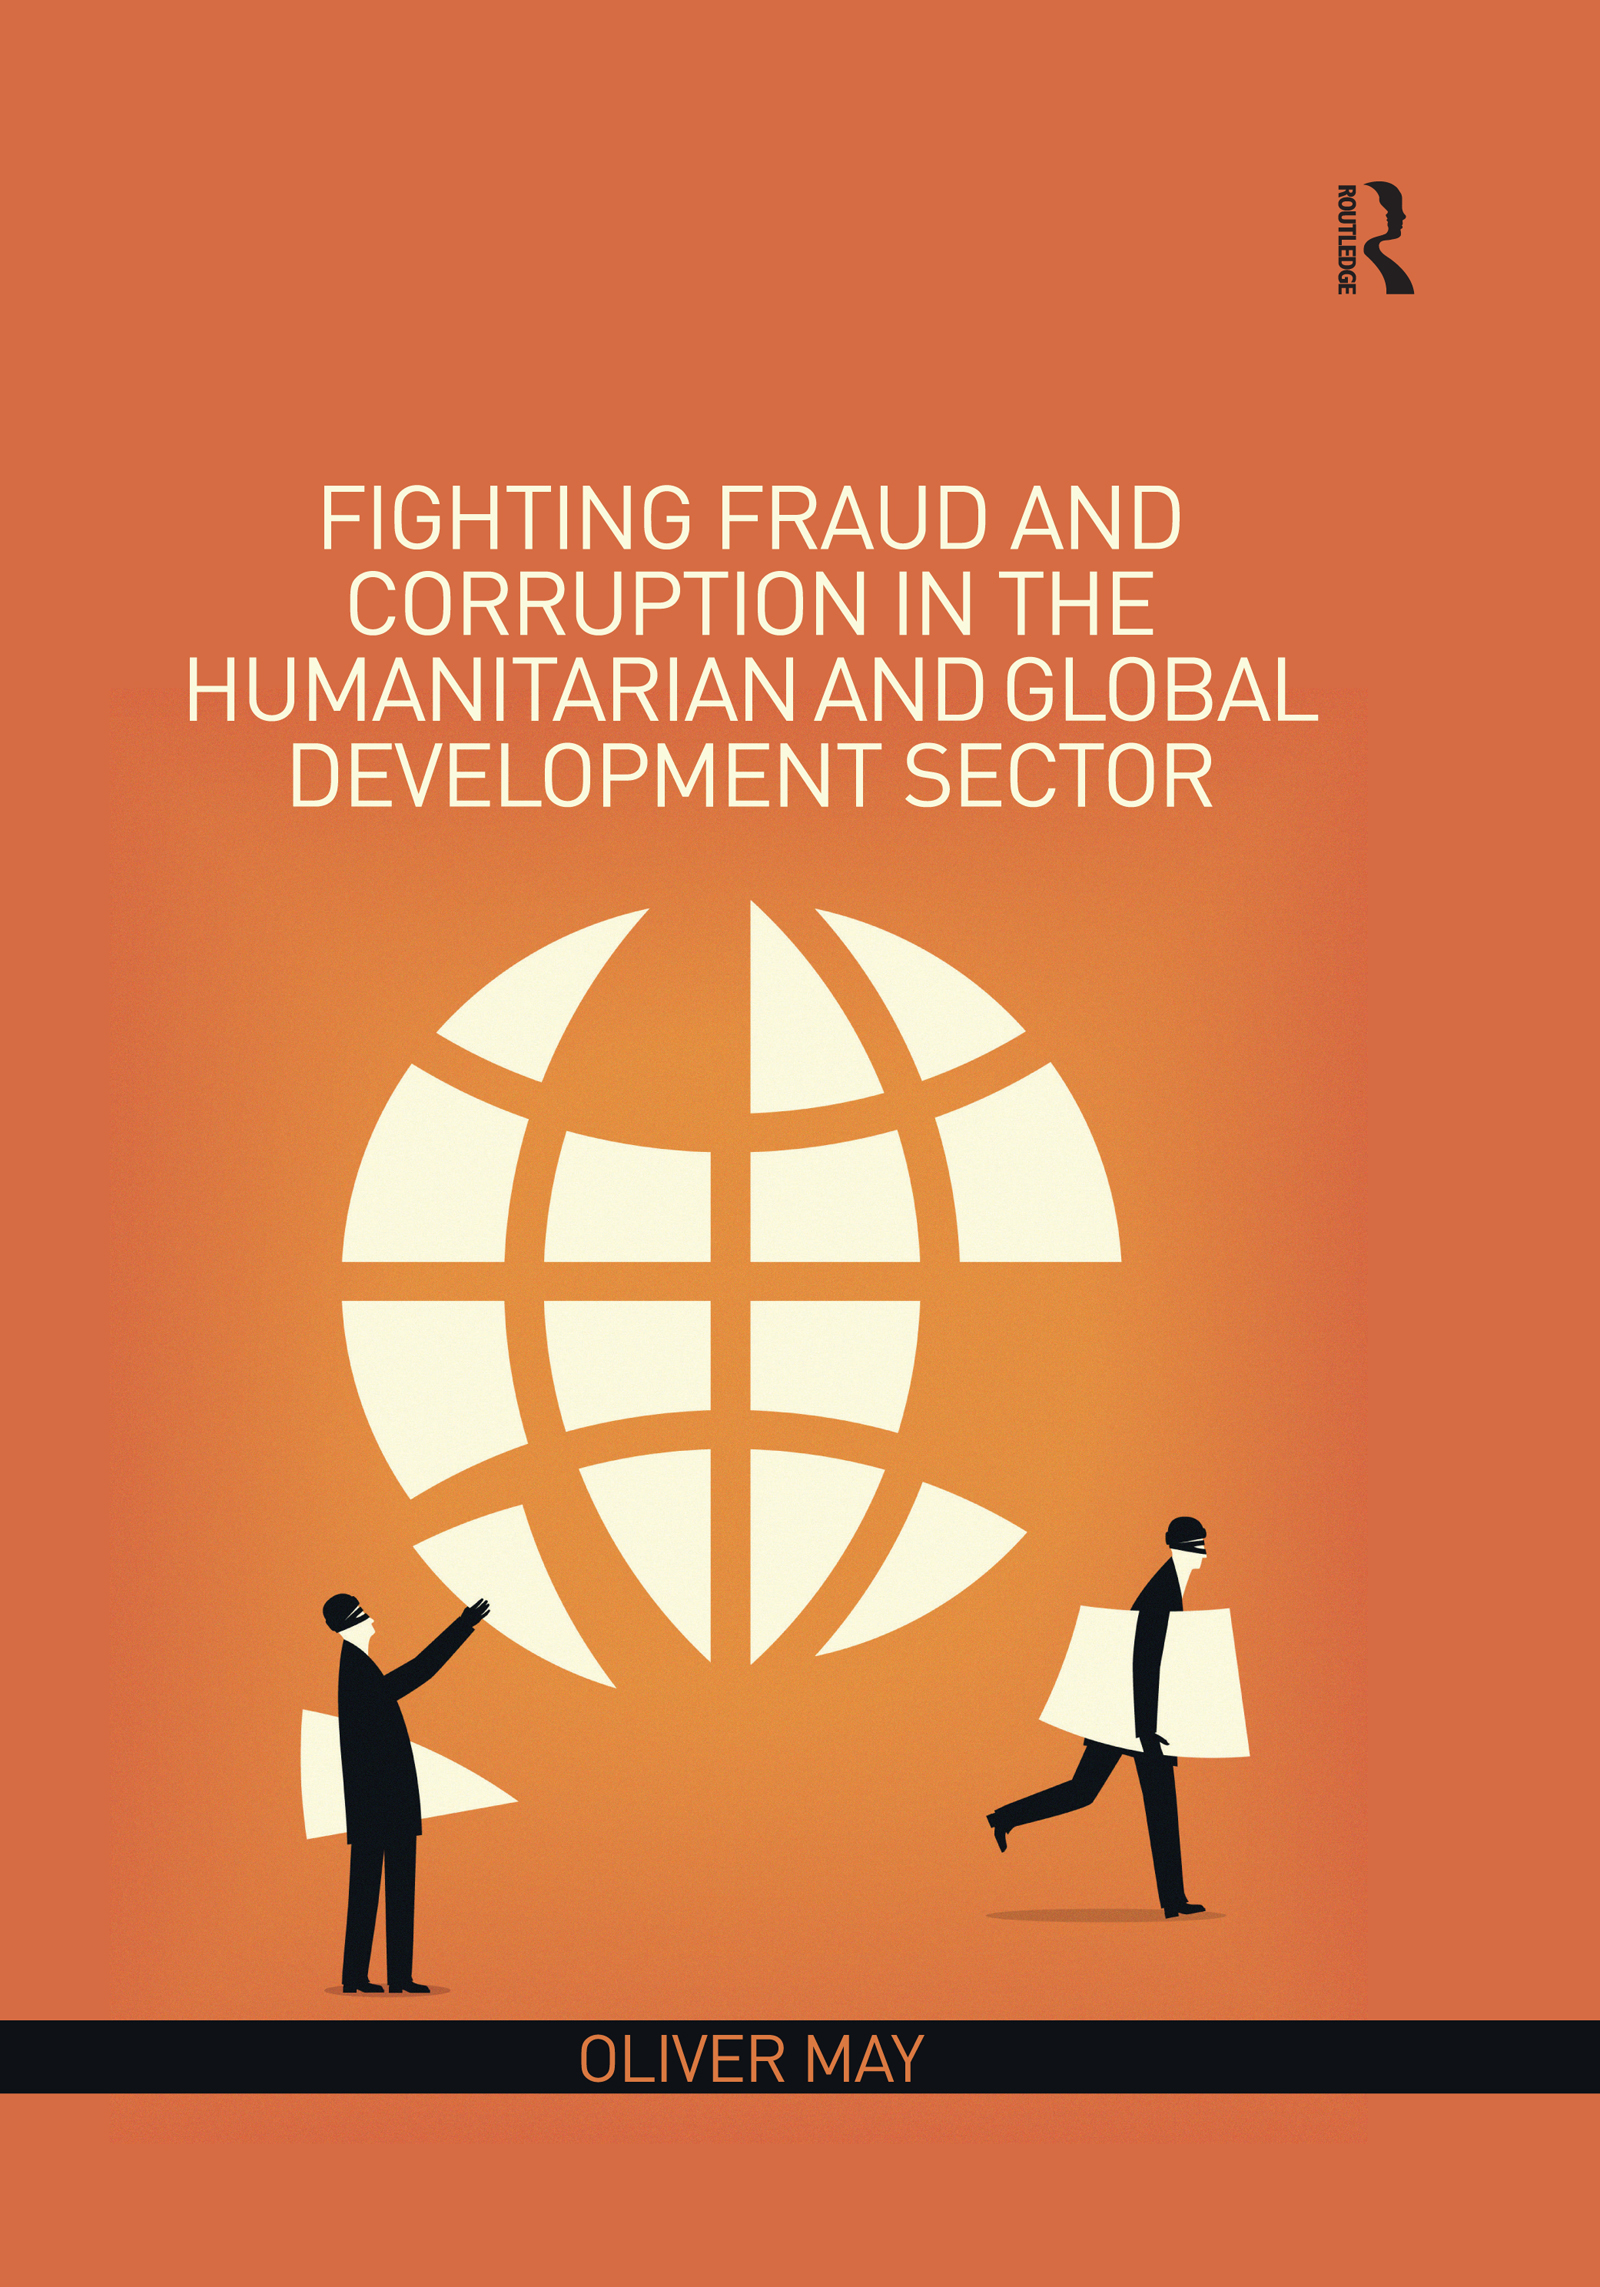 Fighting Fraud and Corruption in the Humanitarian and Global Development Sector